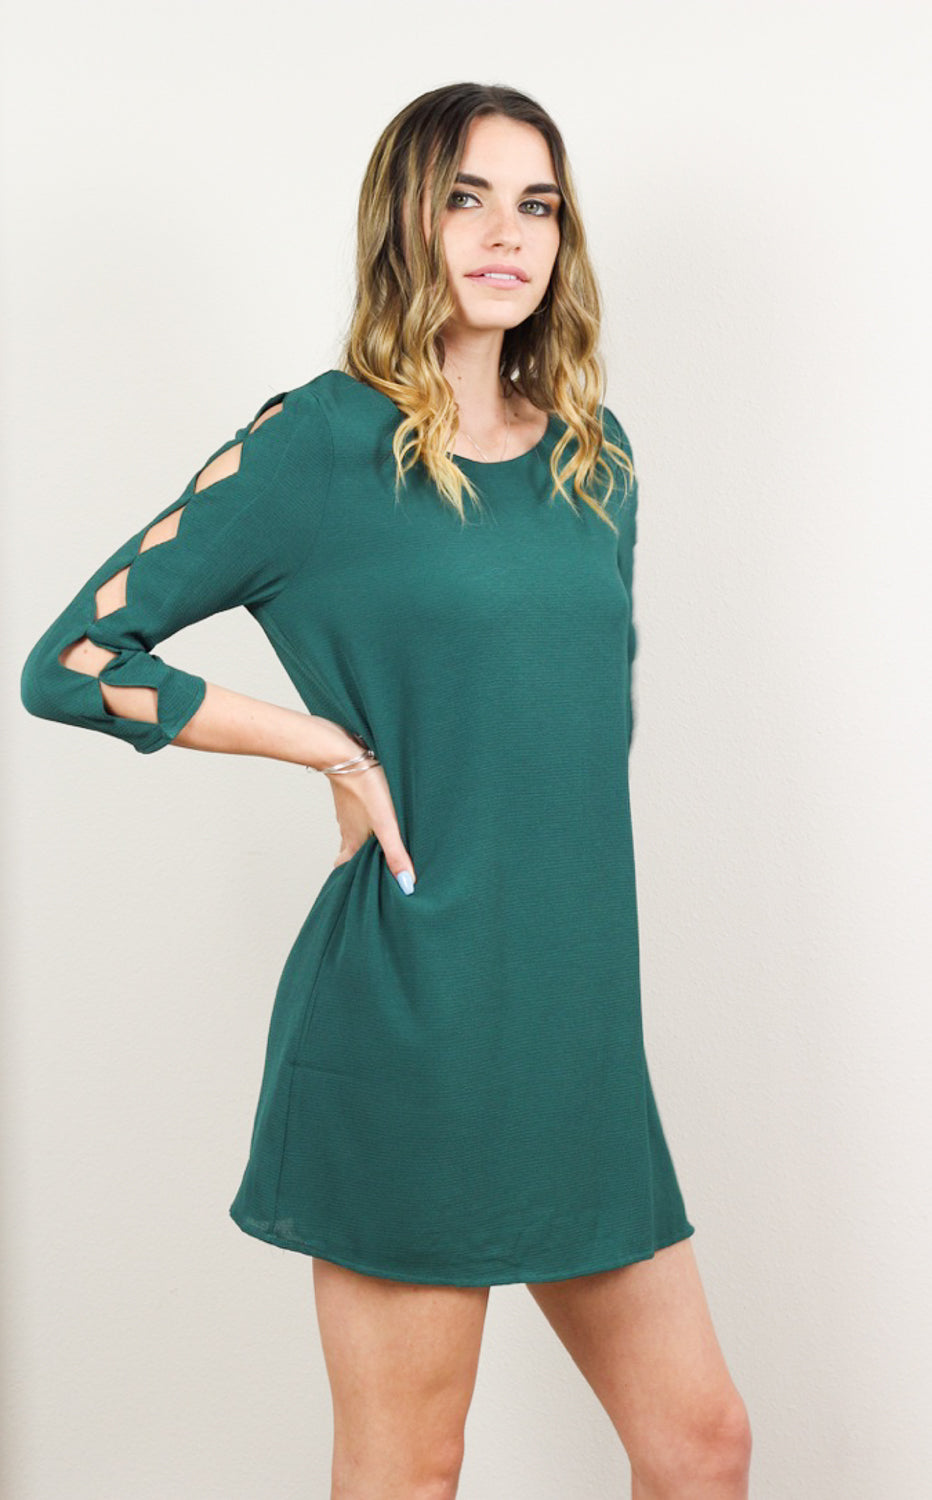 Autumn Diamond Cutout Green Woven Dress